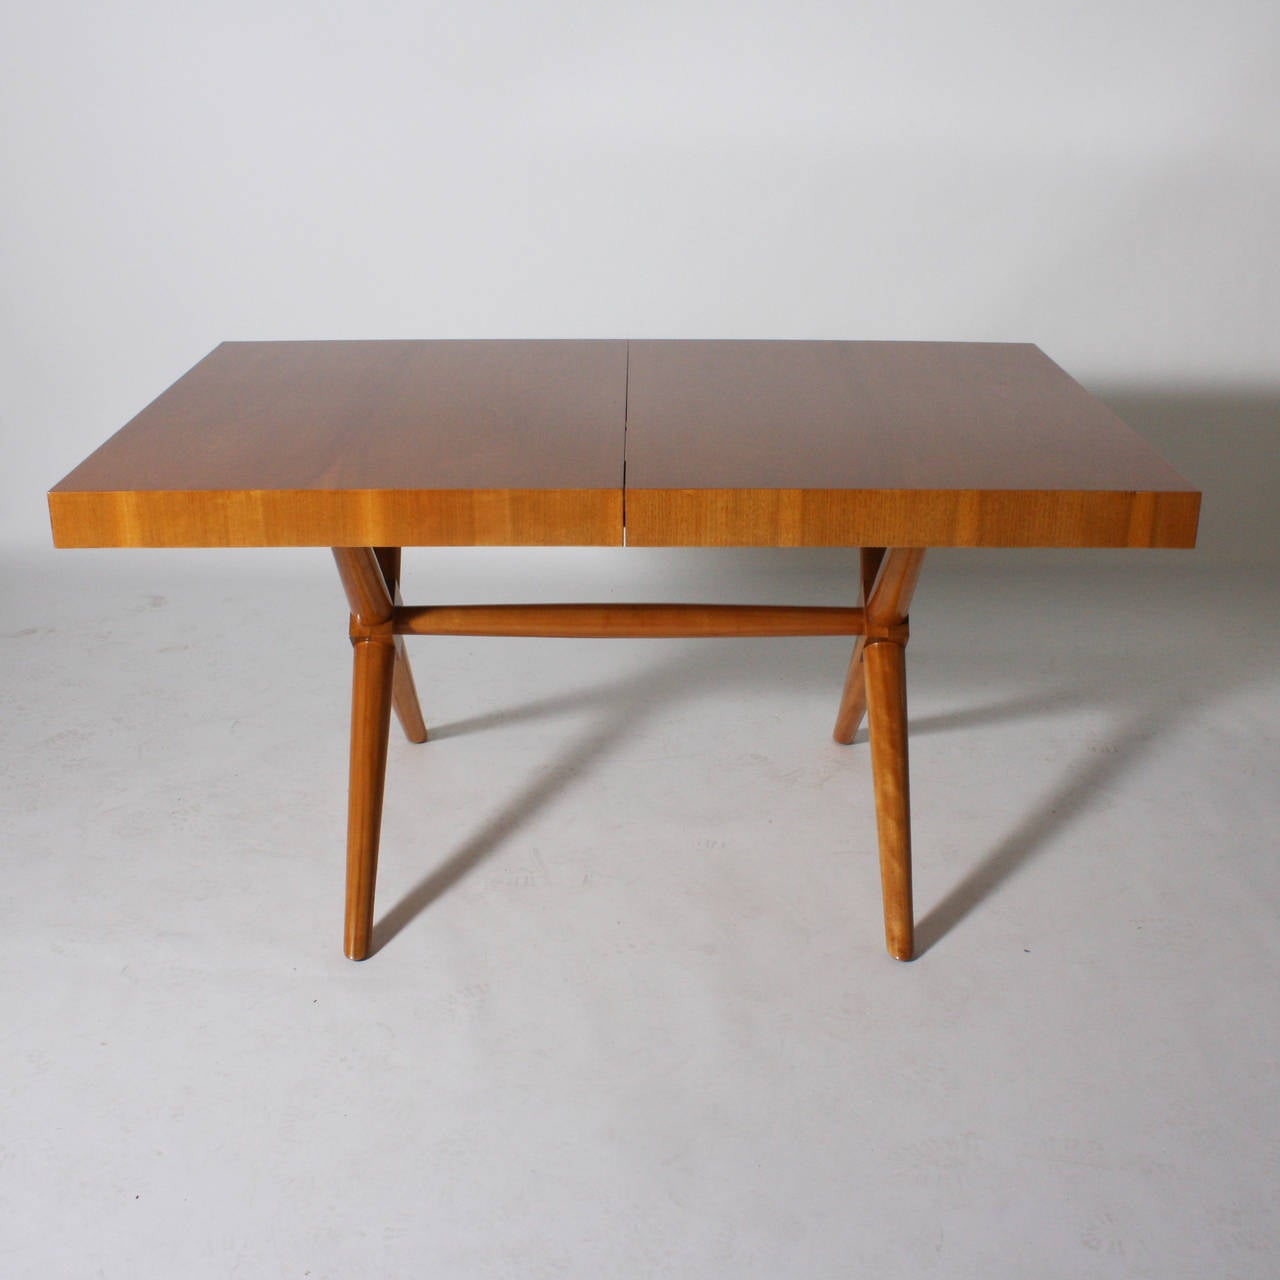 TH Robsjohn Gibbings Dining Table With Leaf Extension